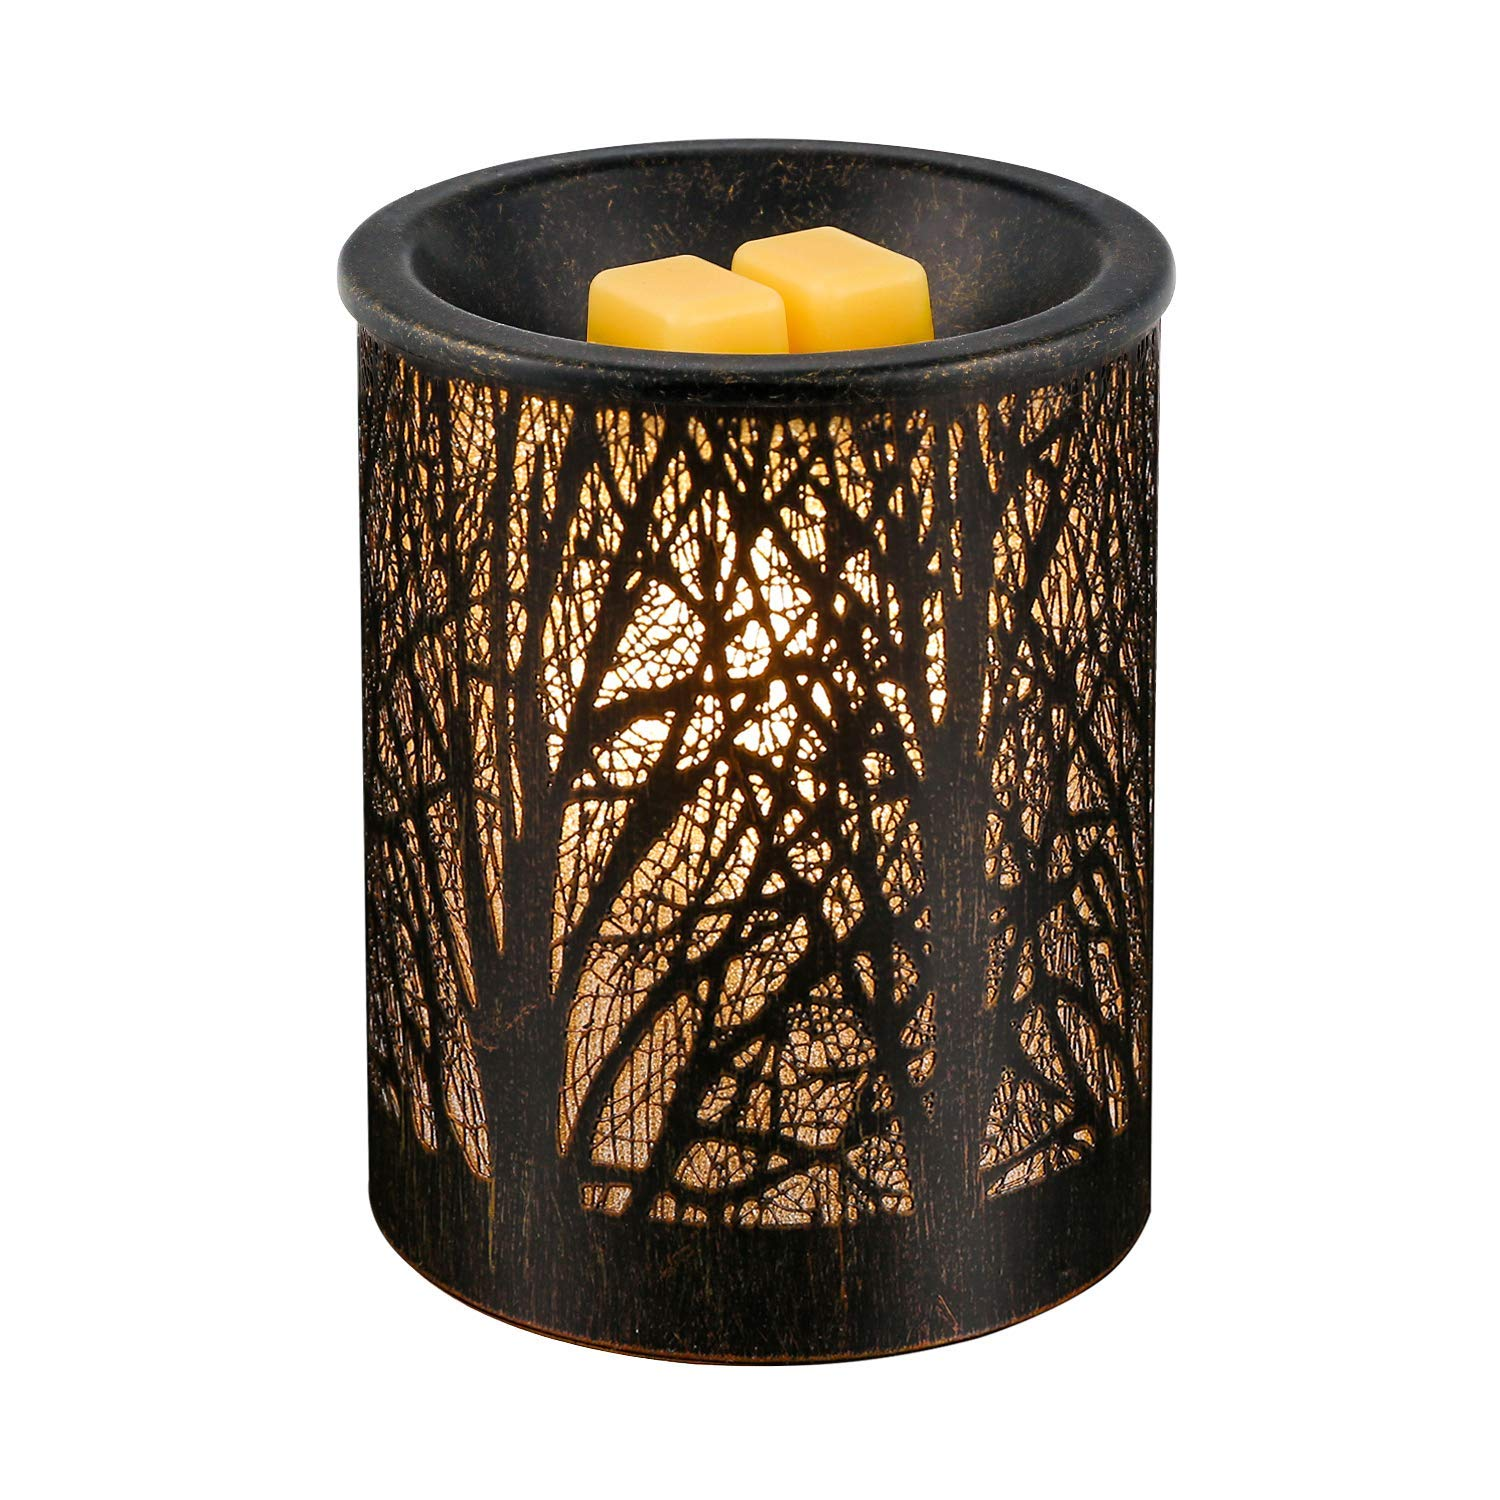 Electric Oil Warmer Wax Burner Incense Oil Warmer Night Light Aroma Decorative Lamp for Gifts & Decor for Home Office Bedroom Living Room